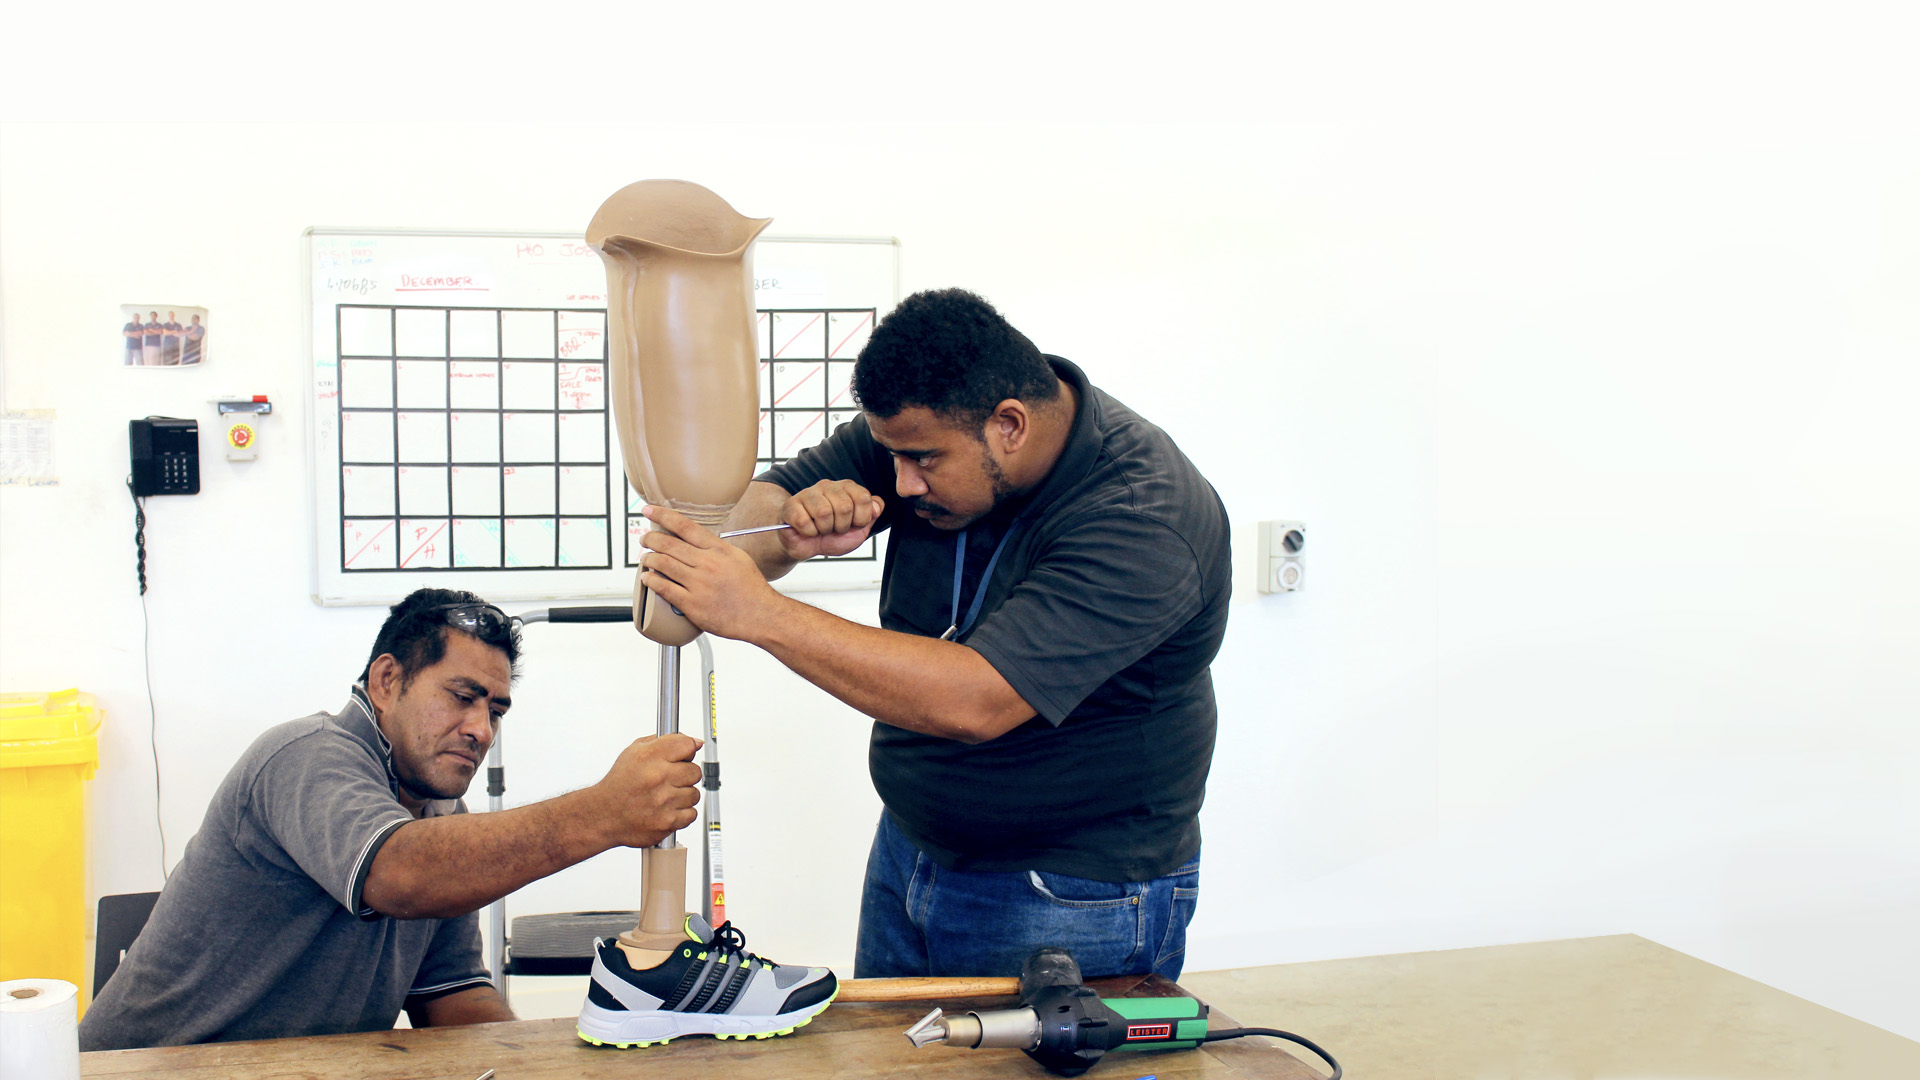 Two men work together to make an adjustment to a prosthetic leg placed upon a workbench. One man sits holding the leg while the other stands, working on it with a tool. Both look very focused.